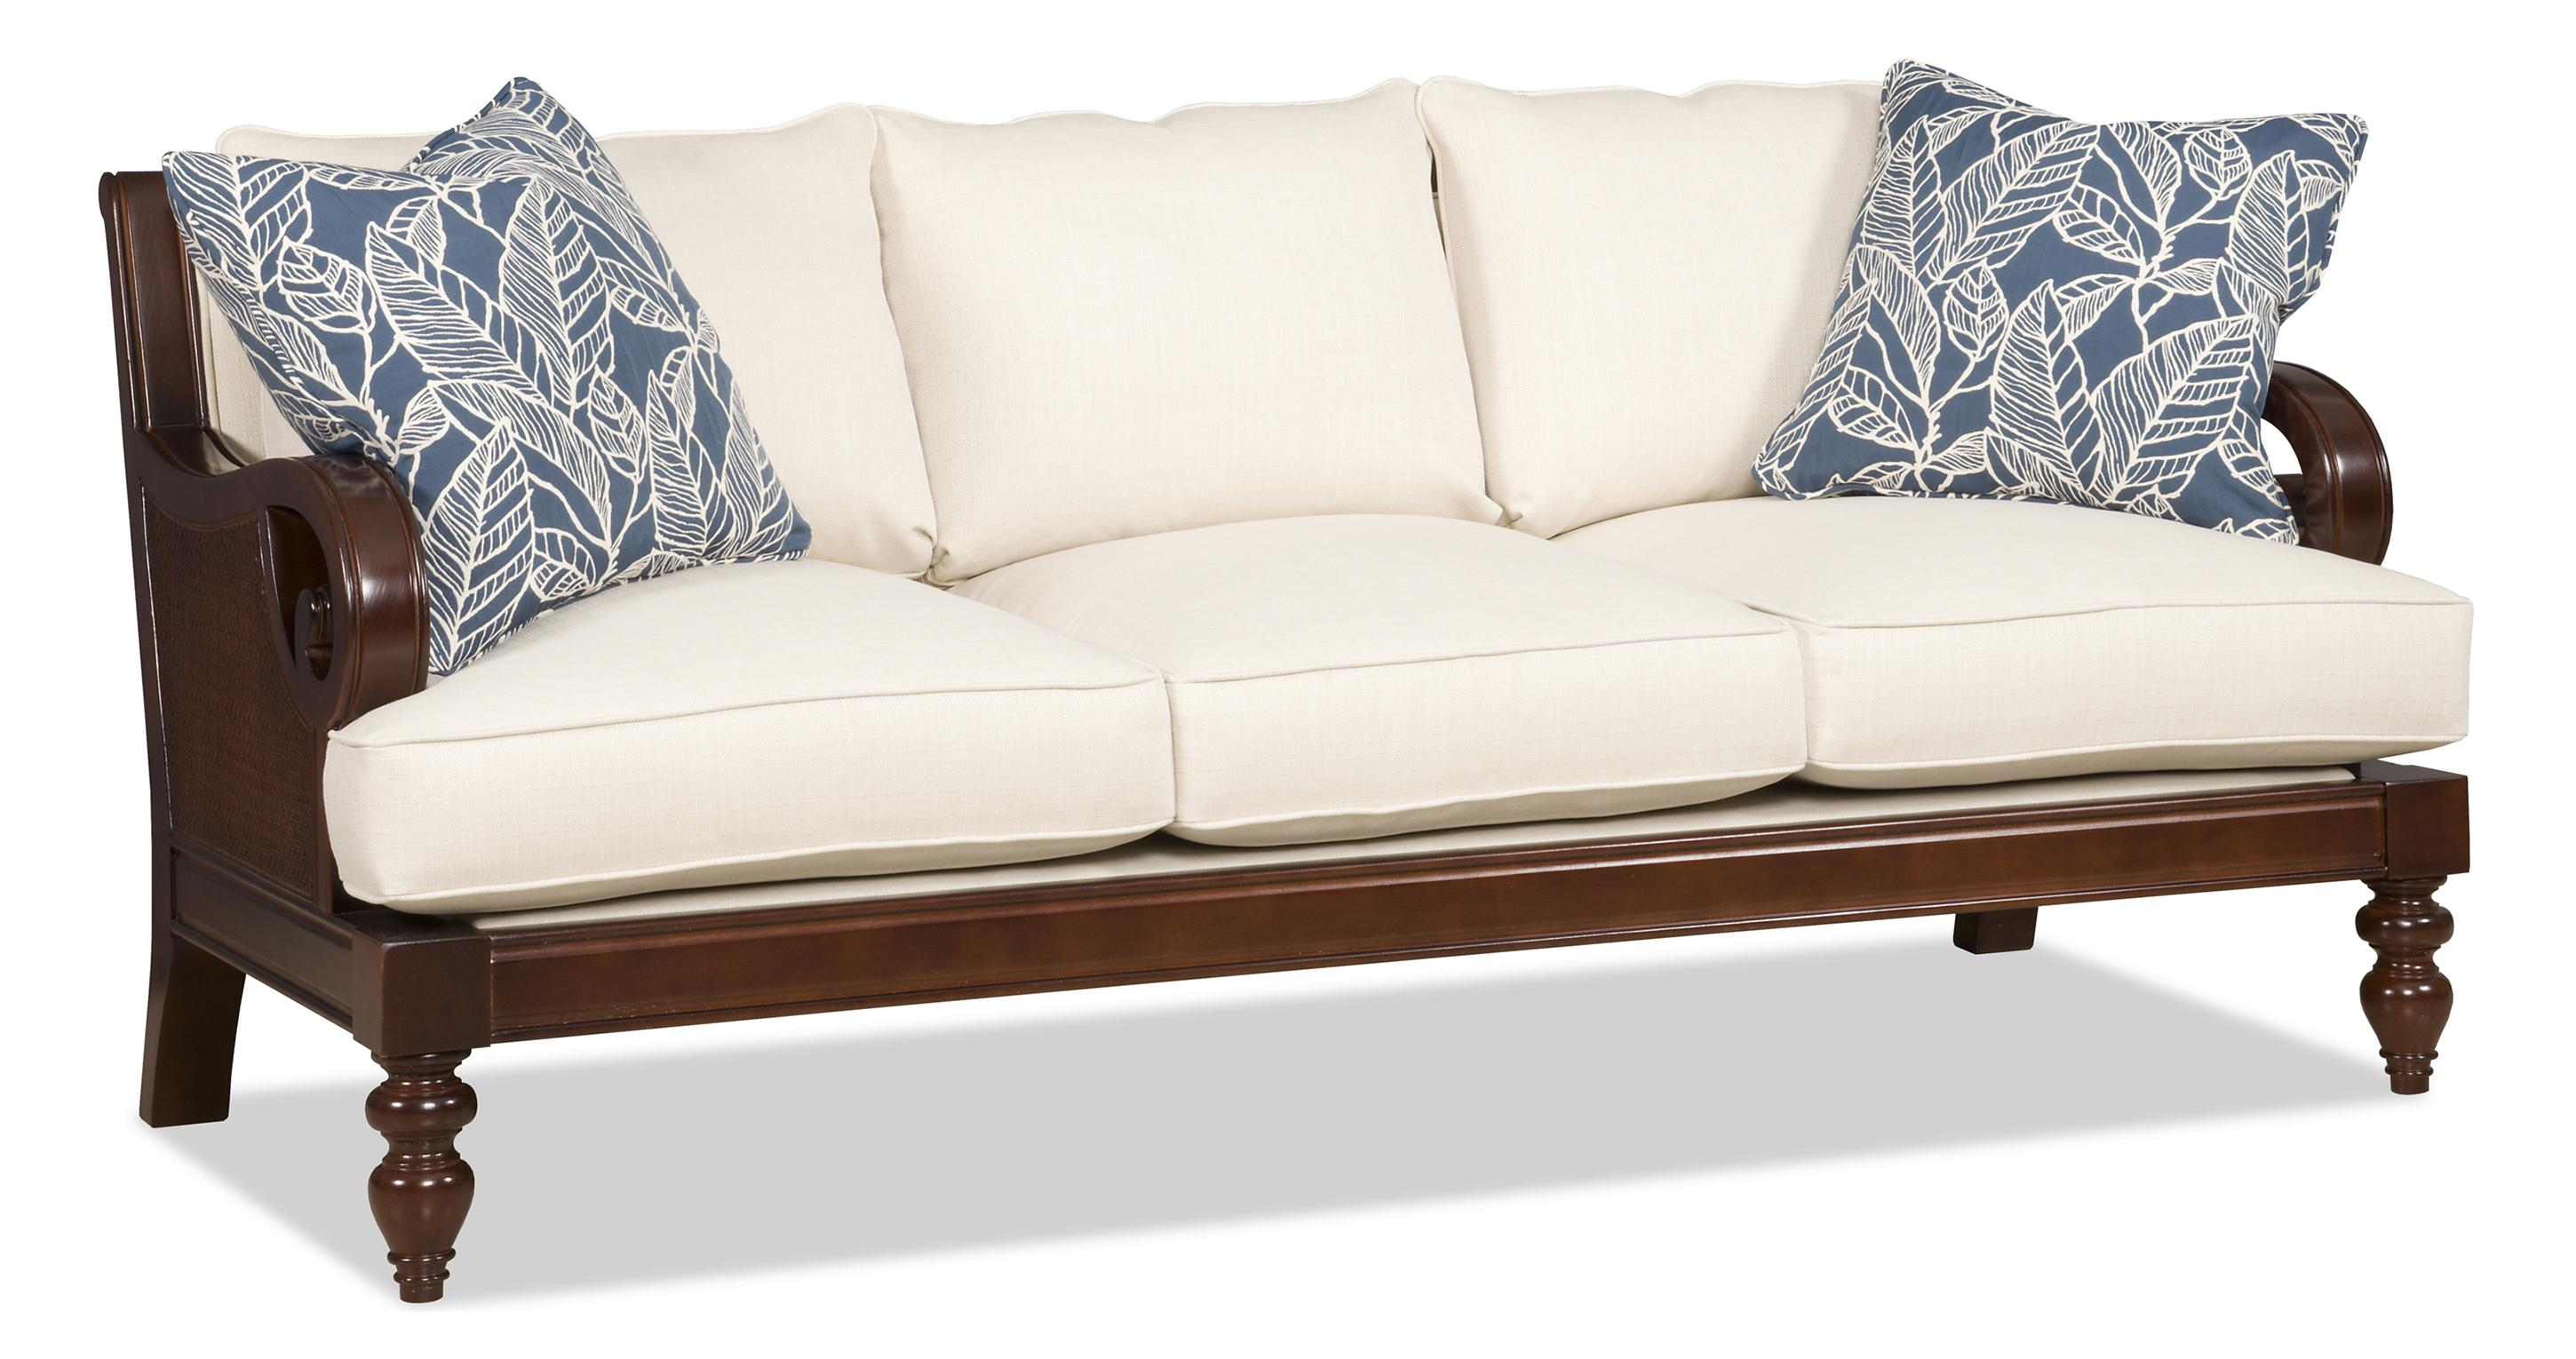 Sofa with wood trim wayfair thesofa